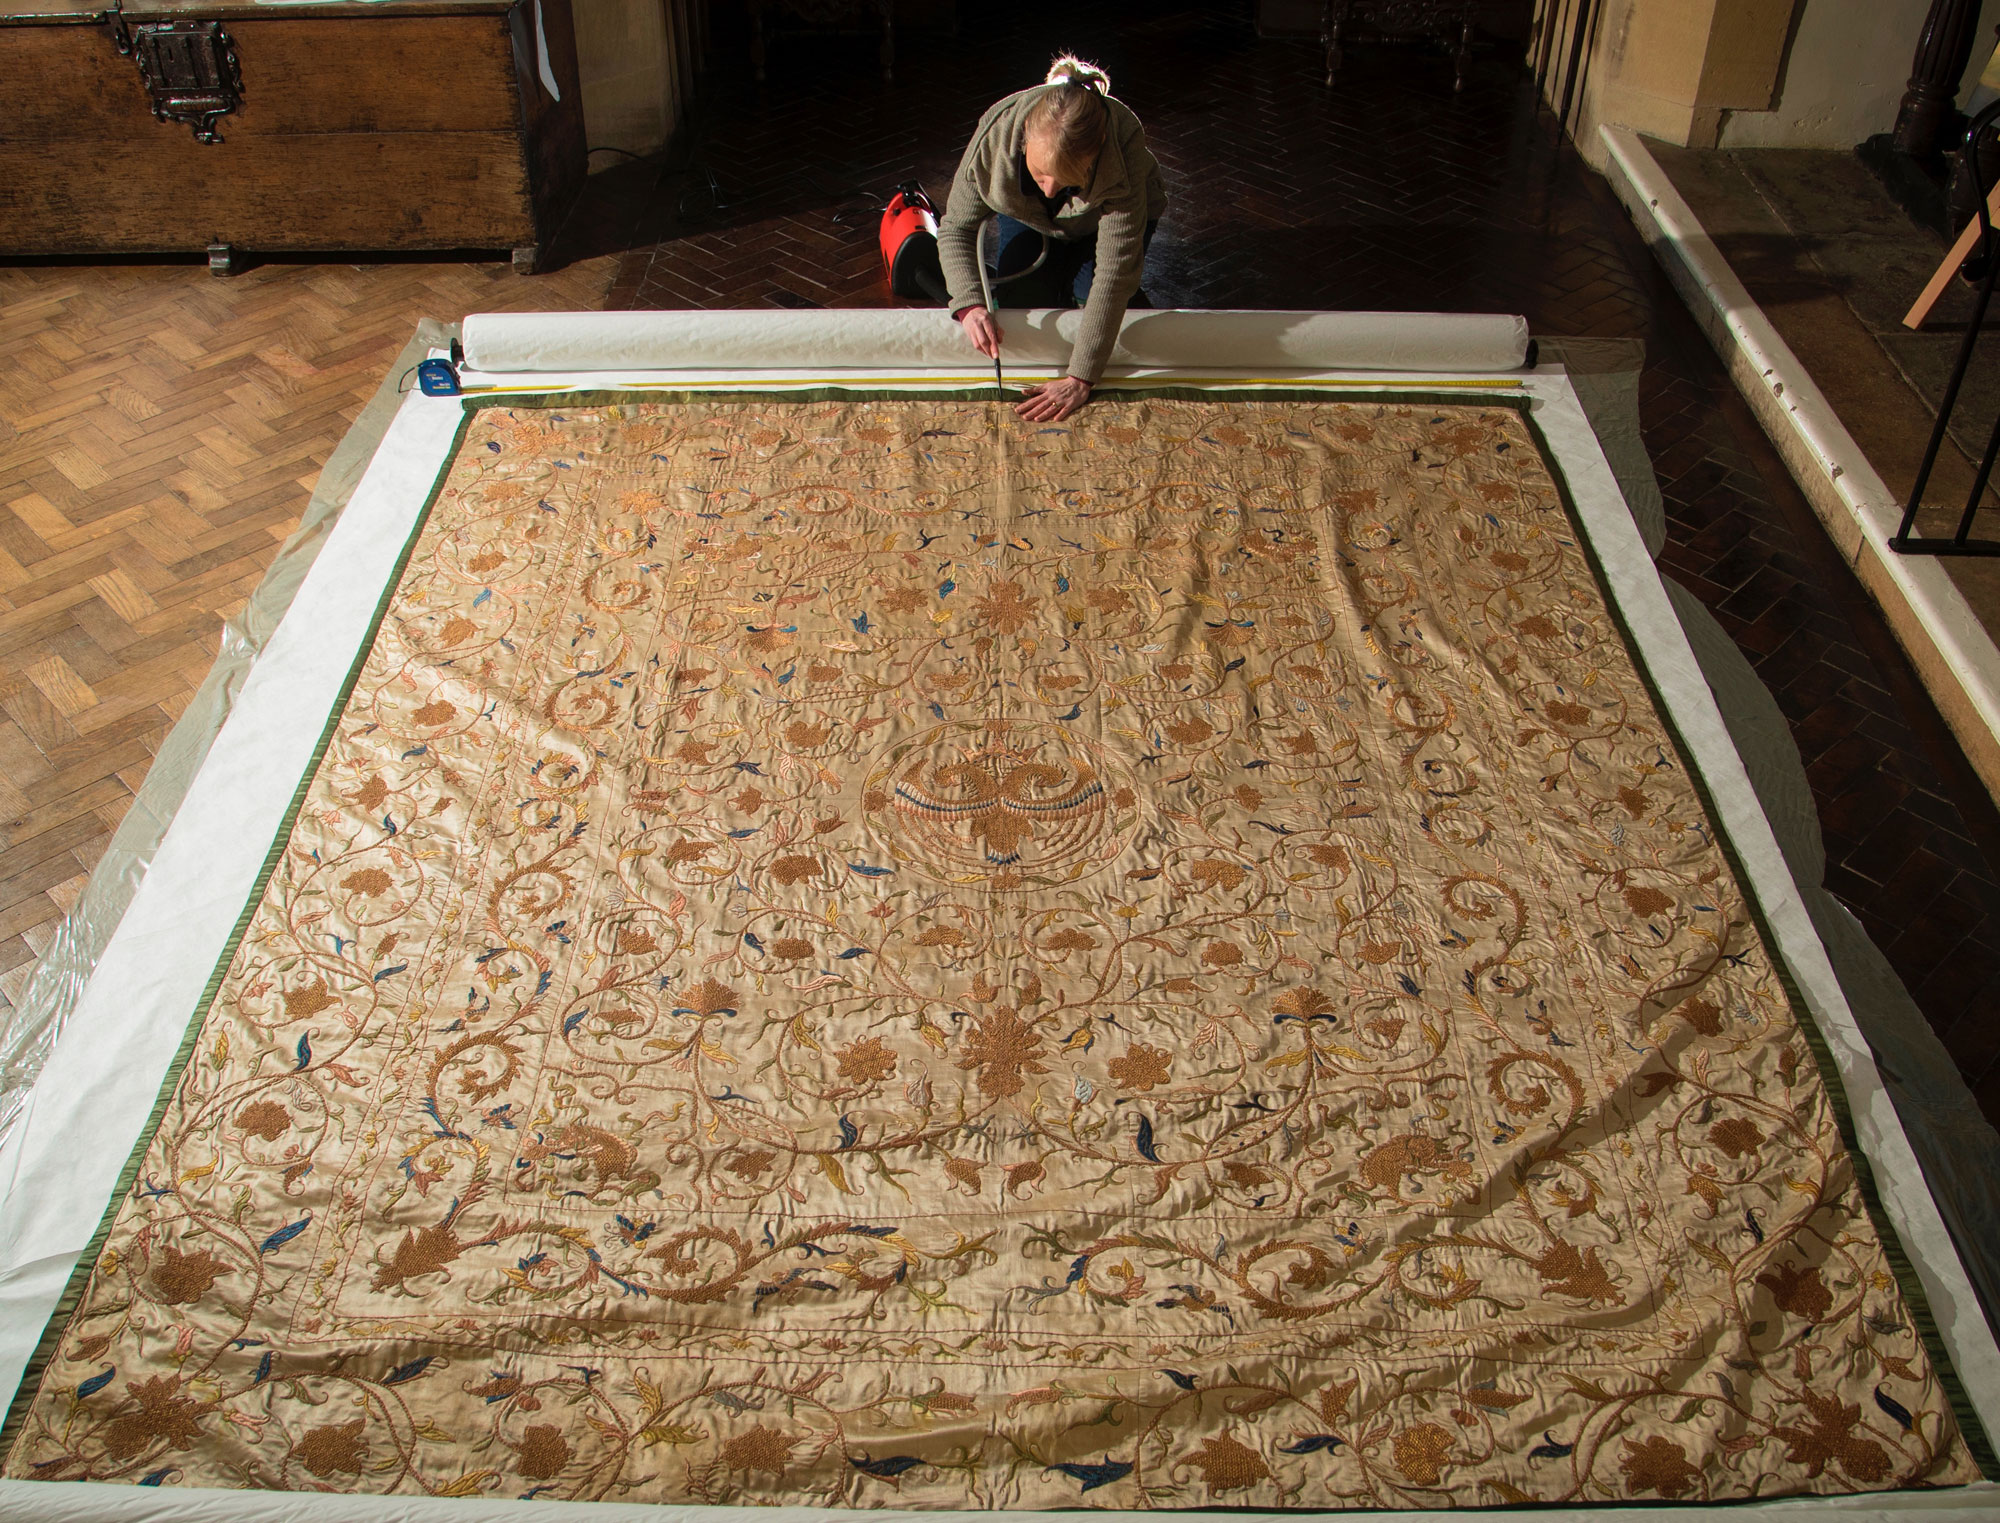 person carefully cleaning section of large golden bedspread with small vacuum cleaner